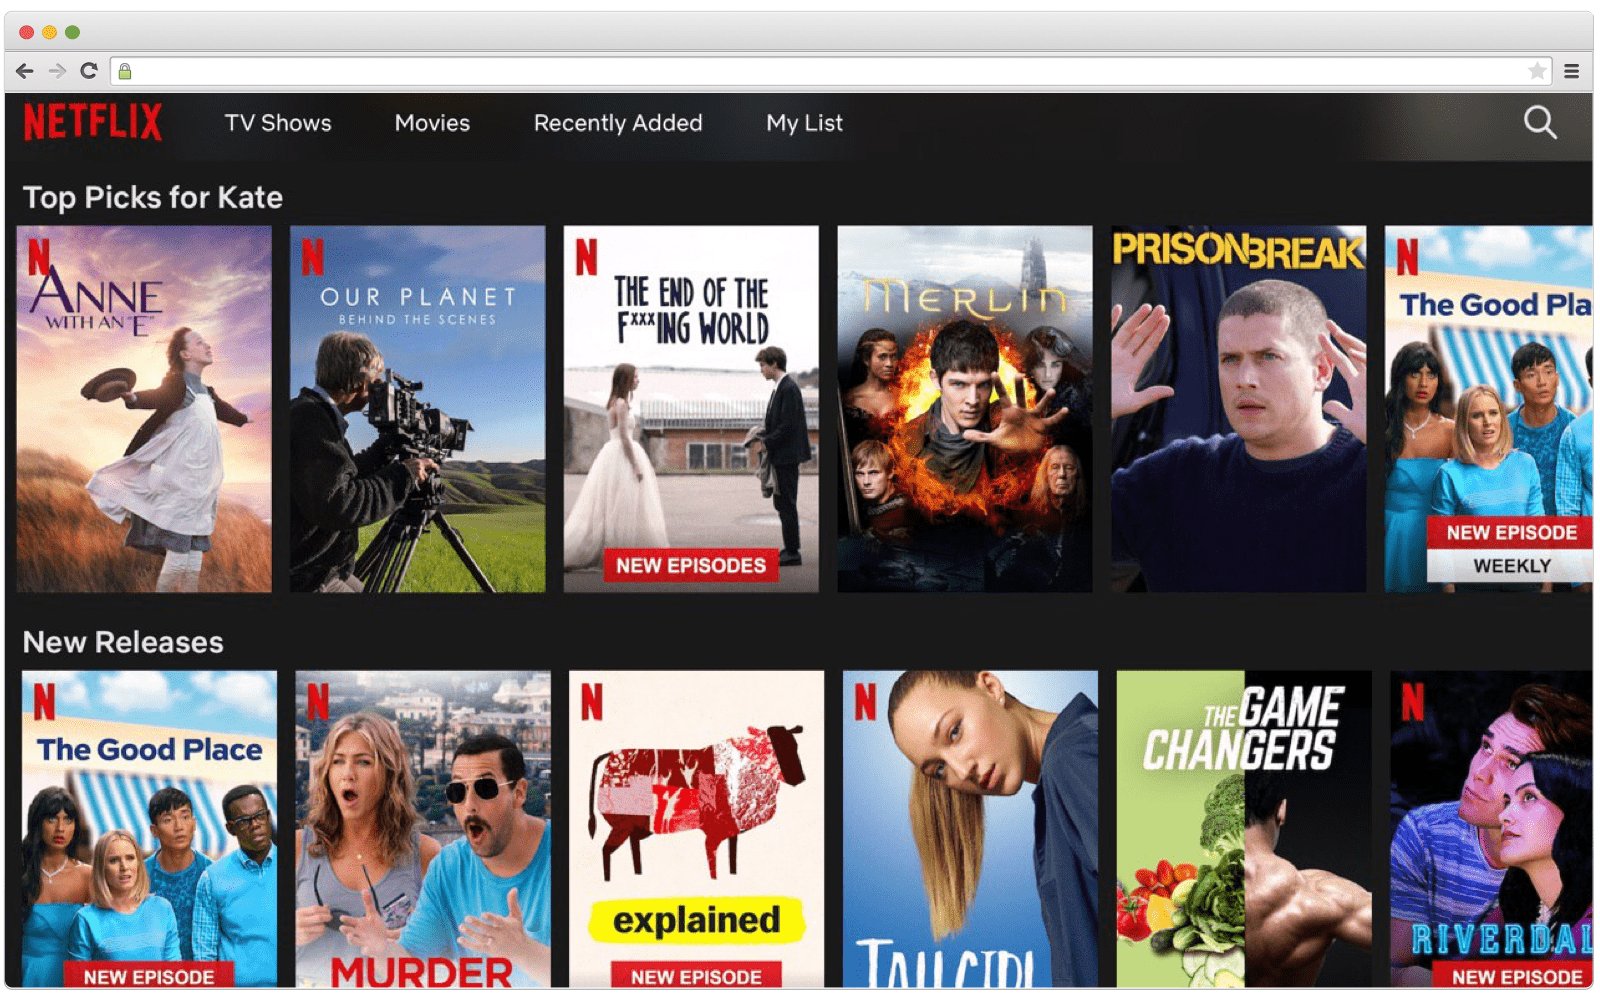 Netflix's recommendation system